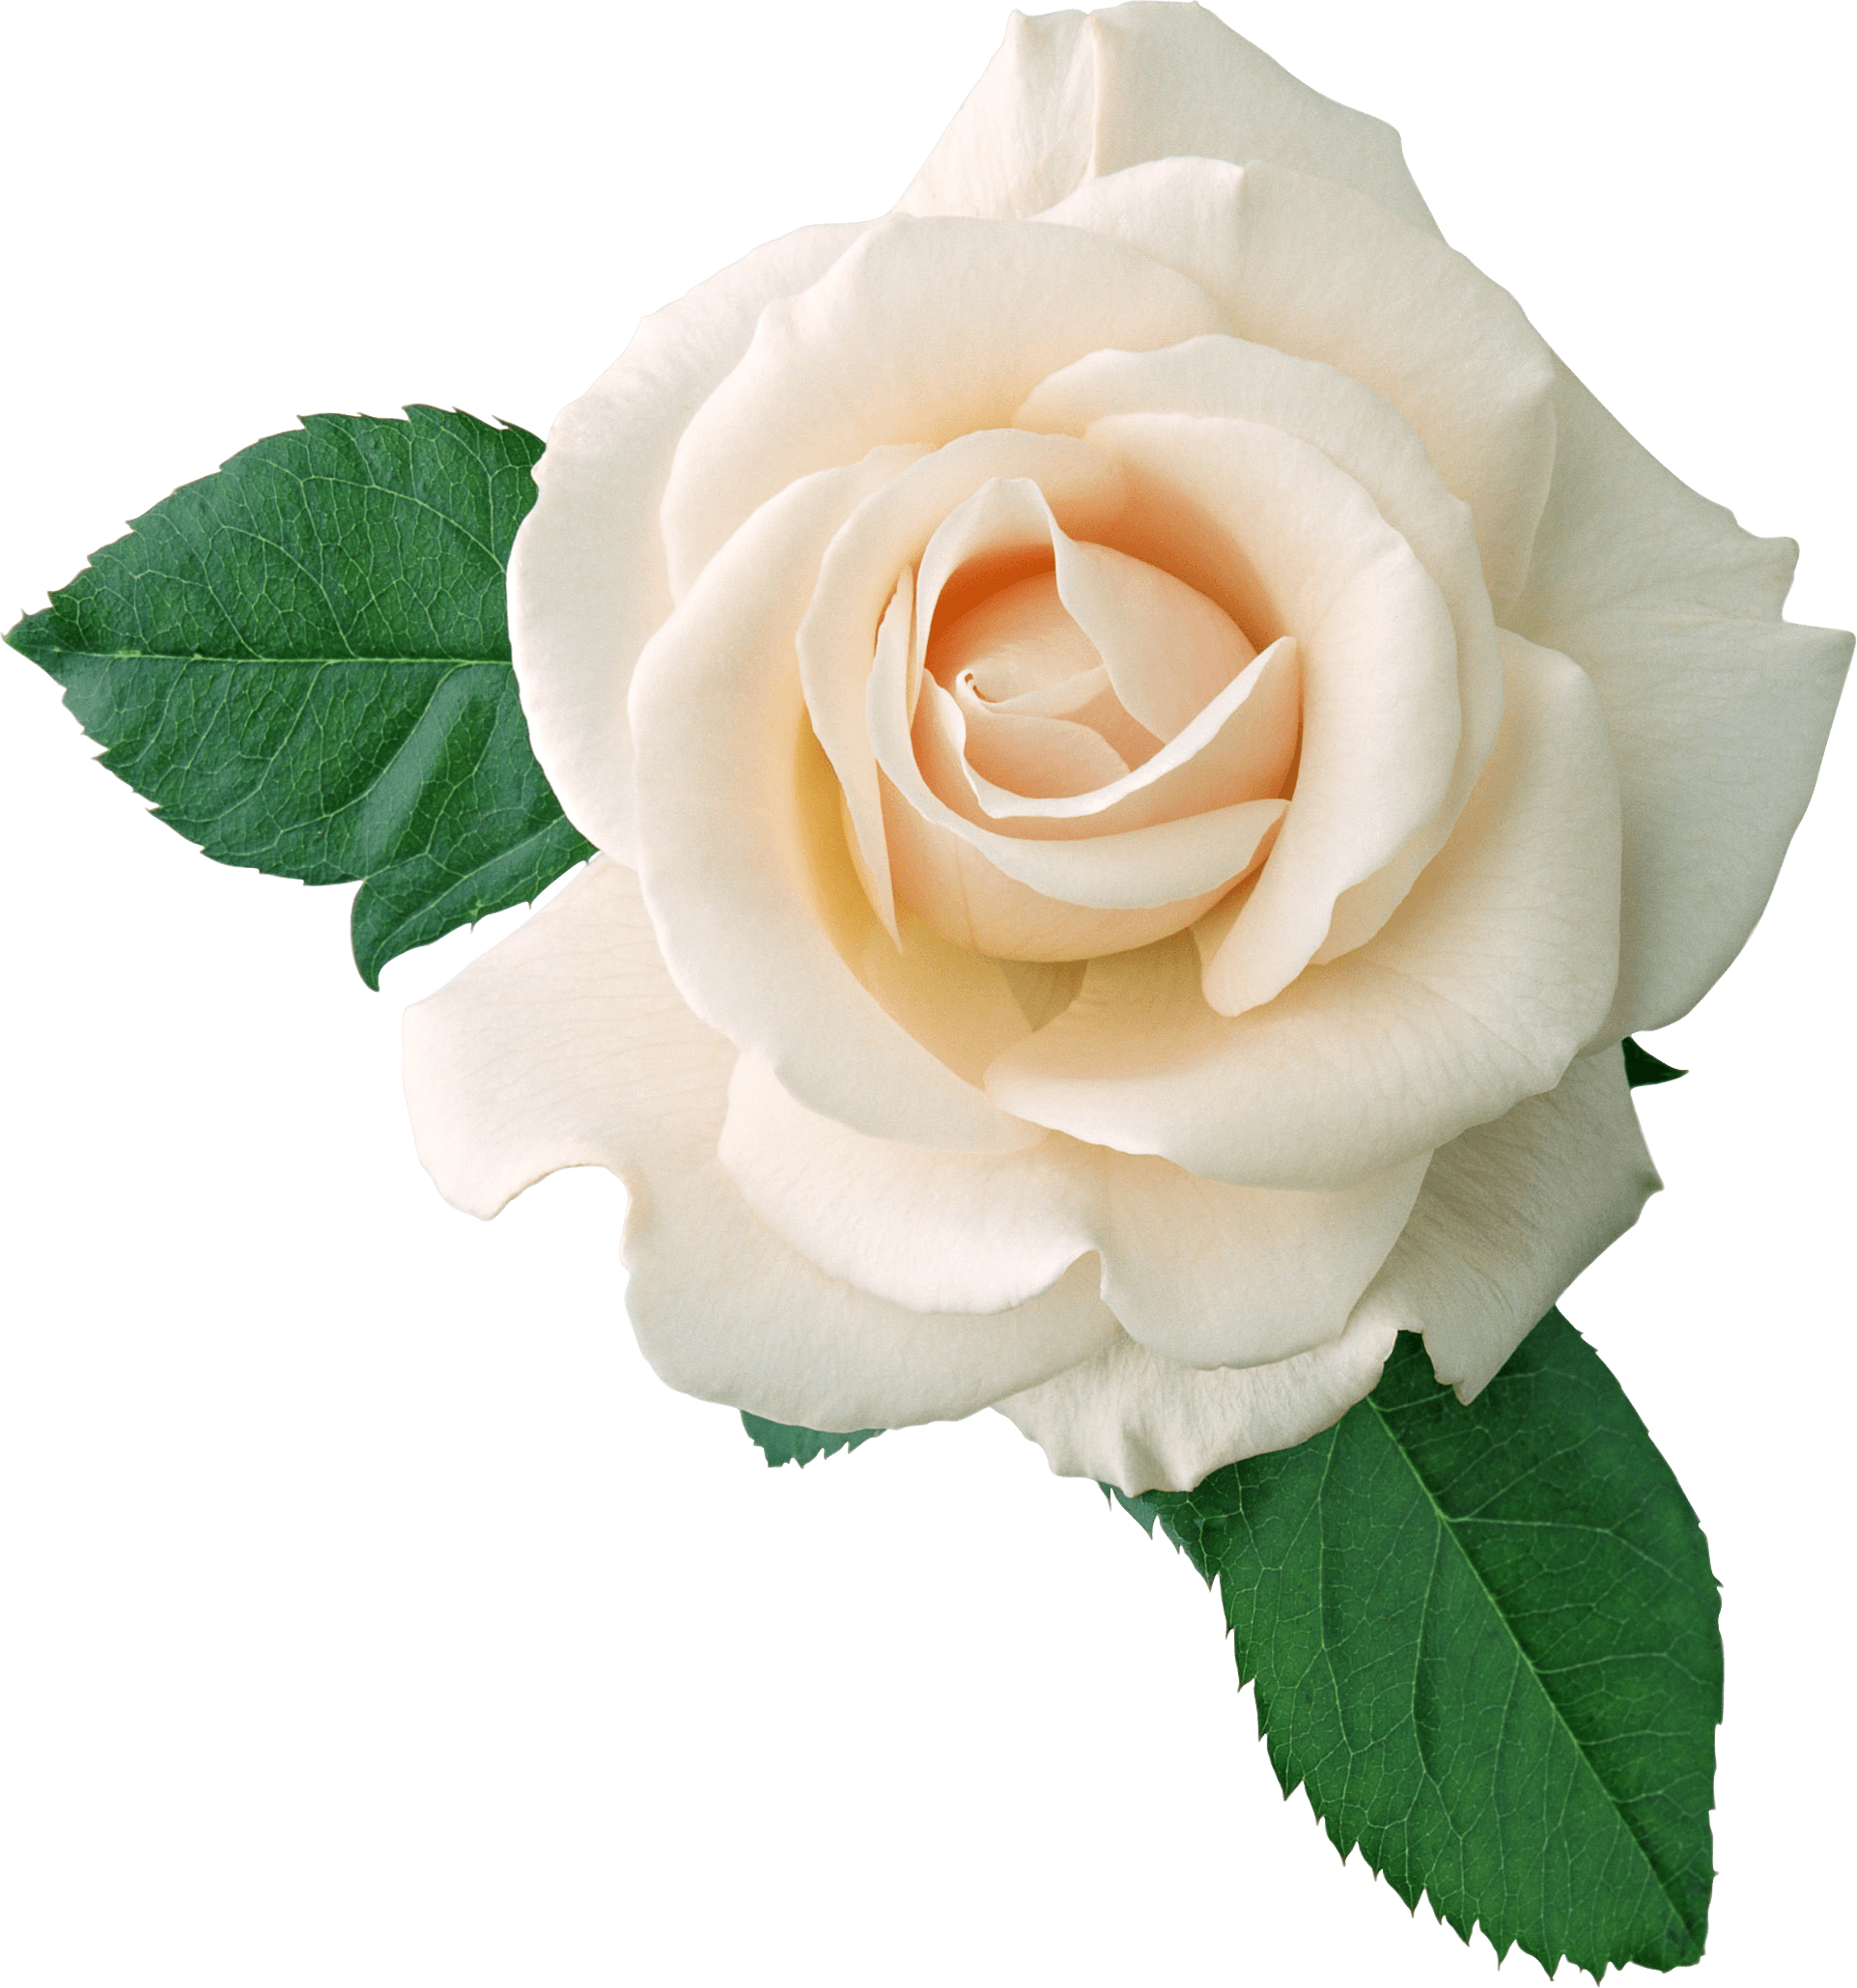 Victorian Rose Png - White Rose On Leaves transparent PNG - StickPNG